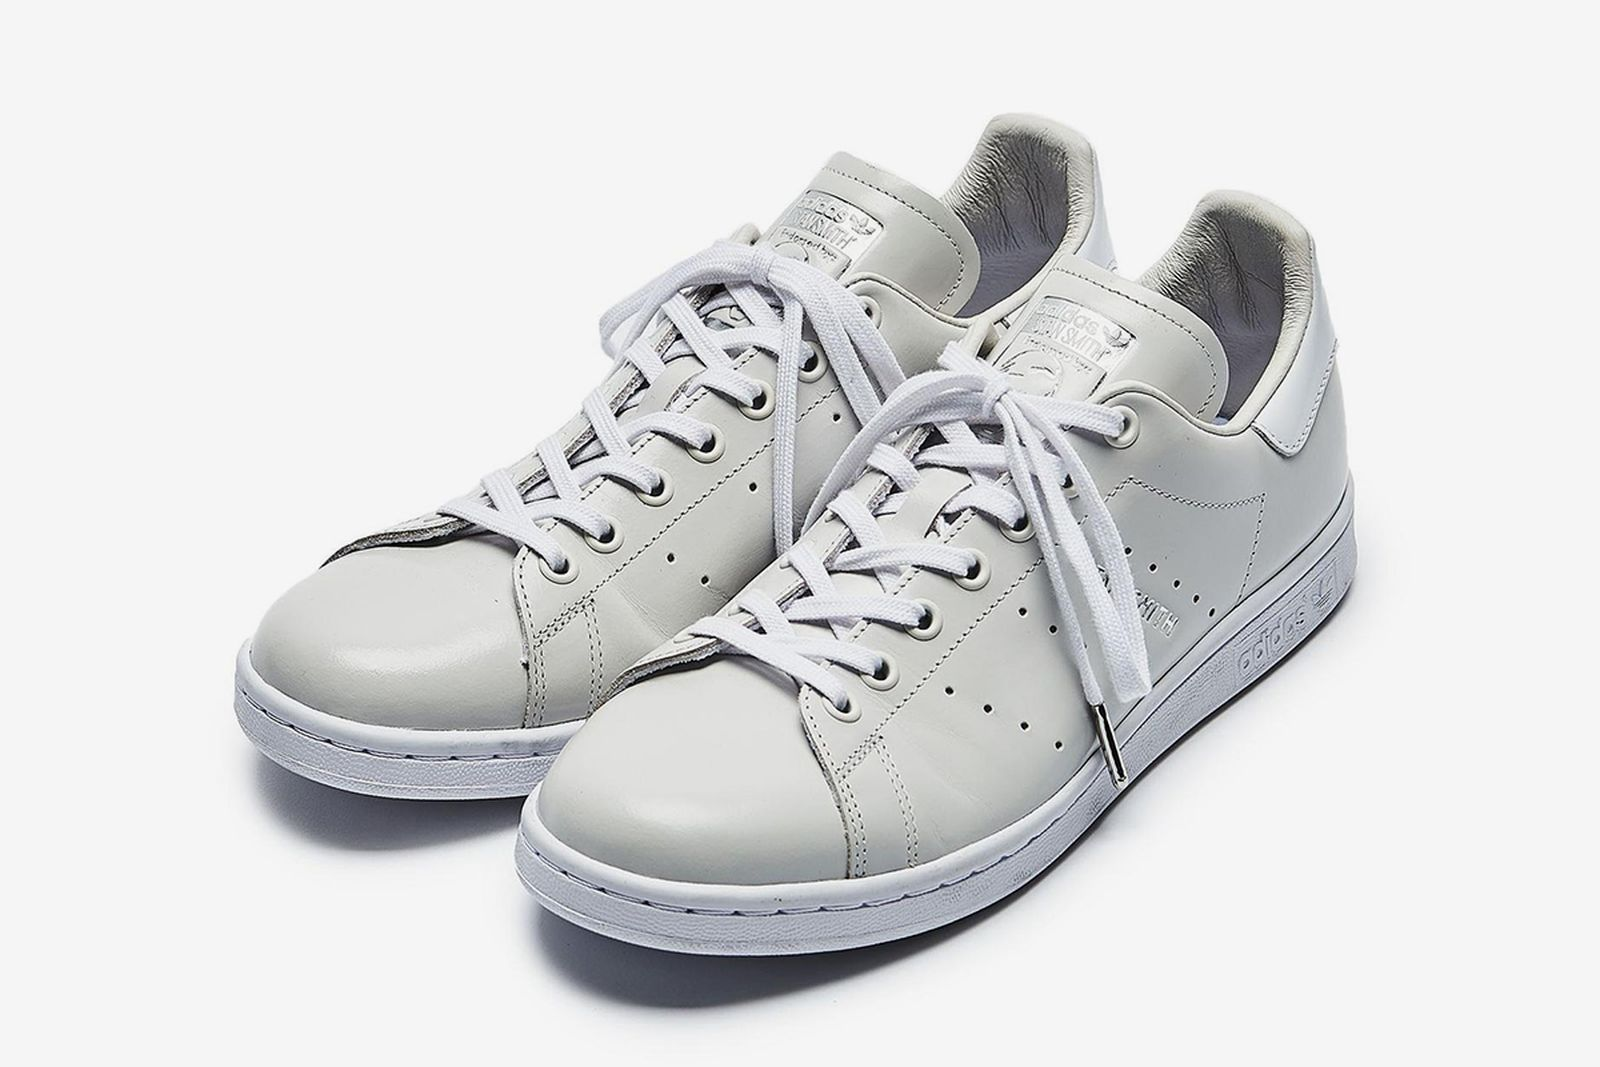 beauty-and-youth-adidas-stan-smith-release-date-price-10